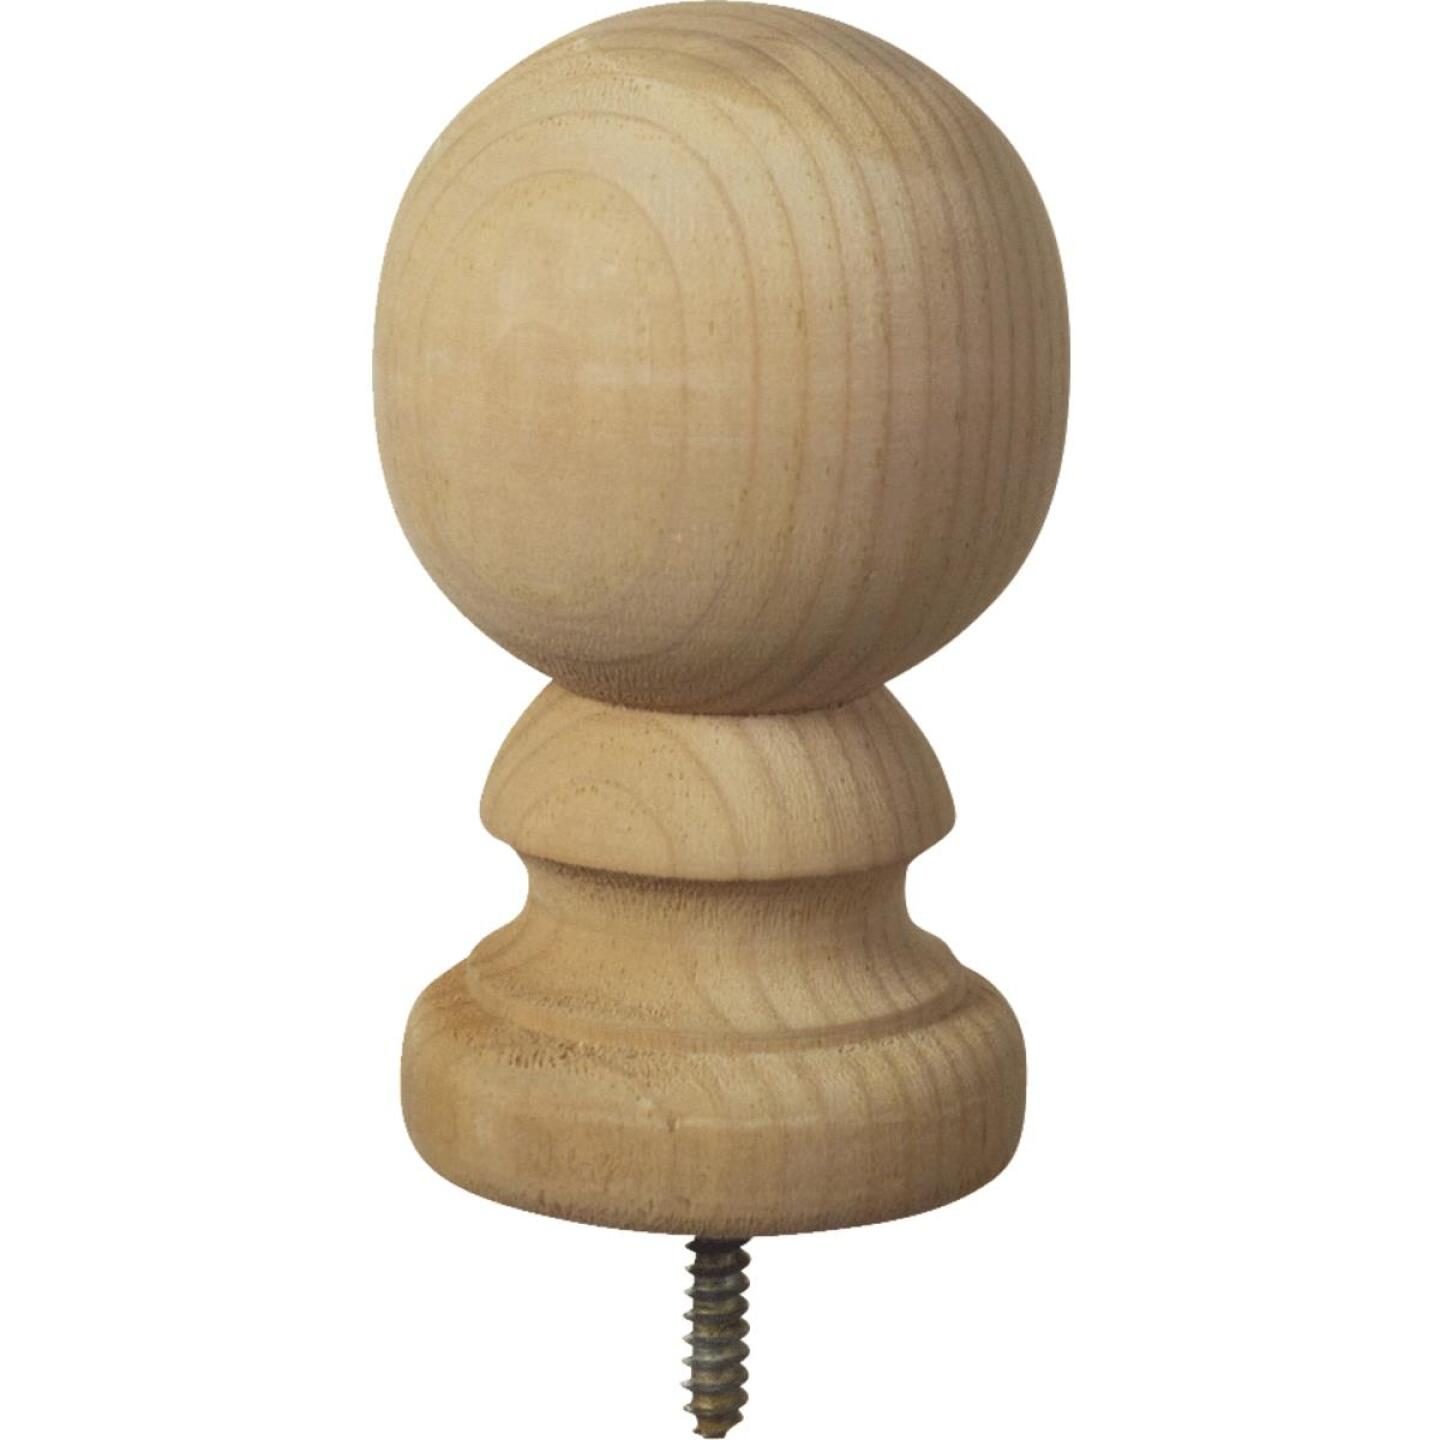 ProWood 3-9/16 In. x 5-3/8 In. Treated Wood Ball Top Natural Post Cap Image 1